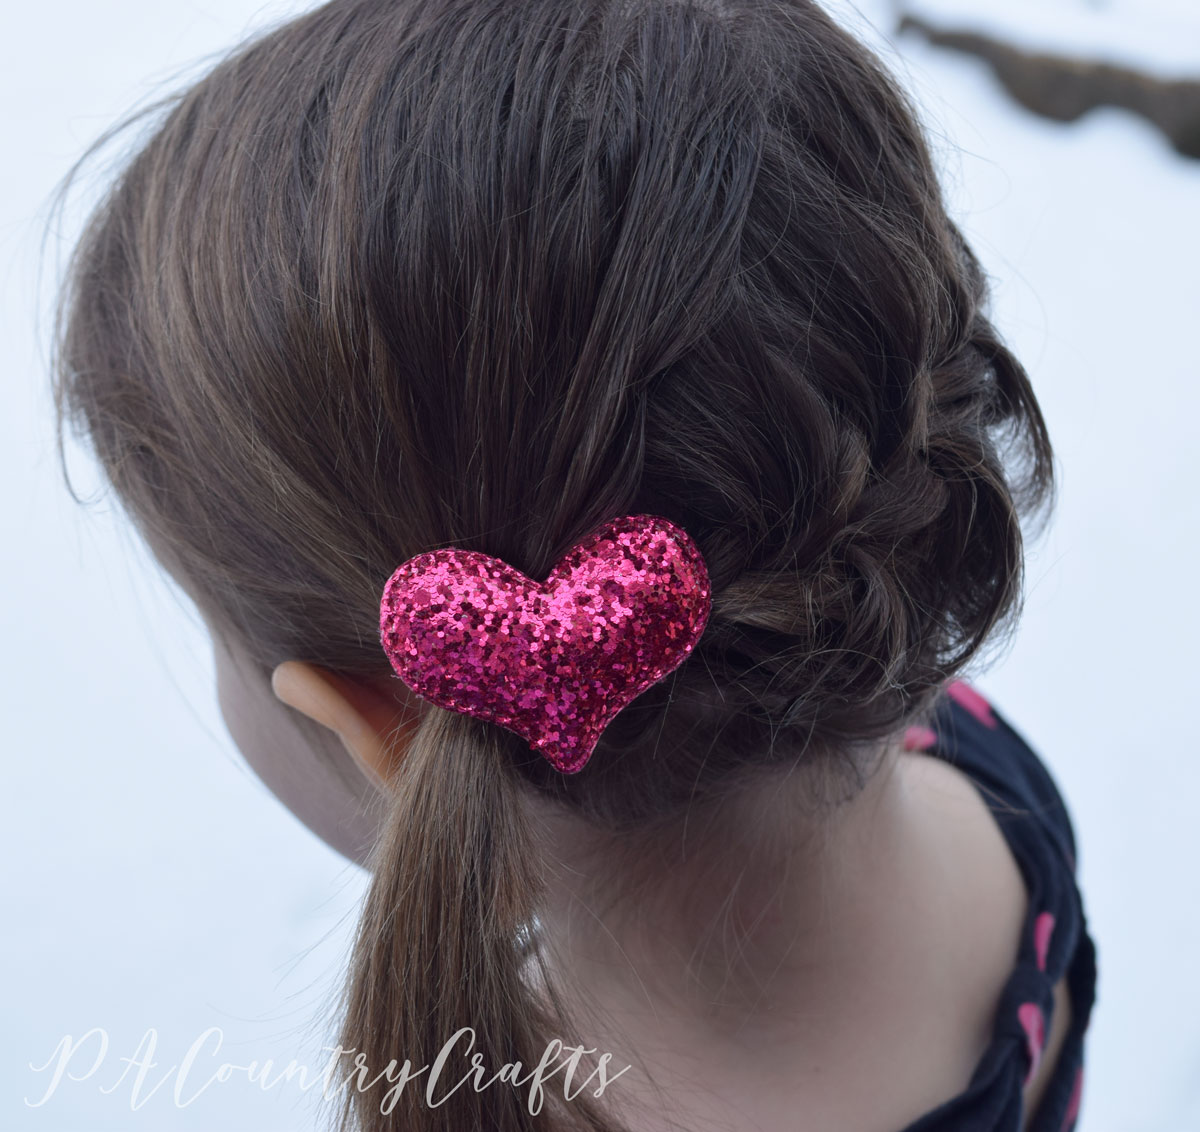 Cute hair clips made from Target Dollar Spot valentine hearts!